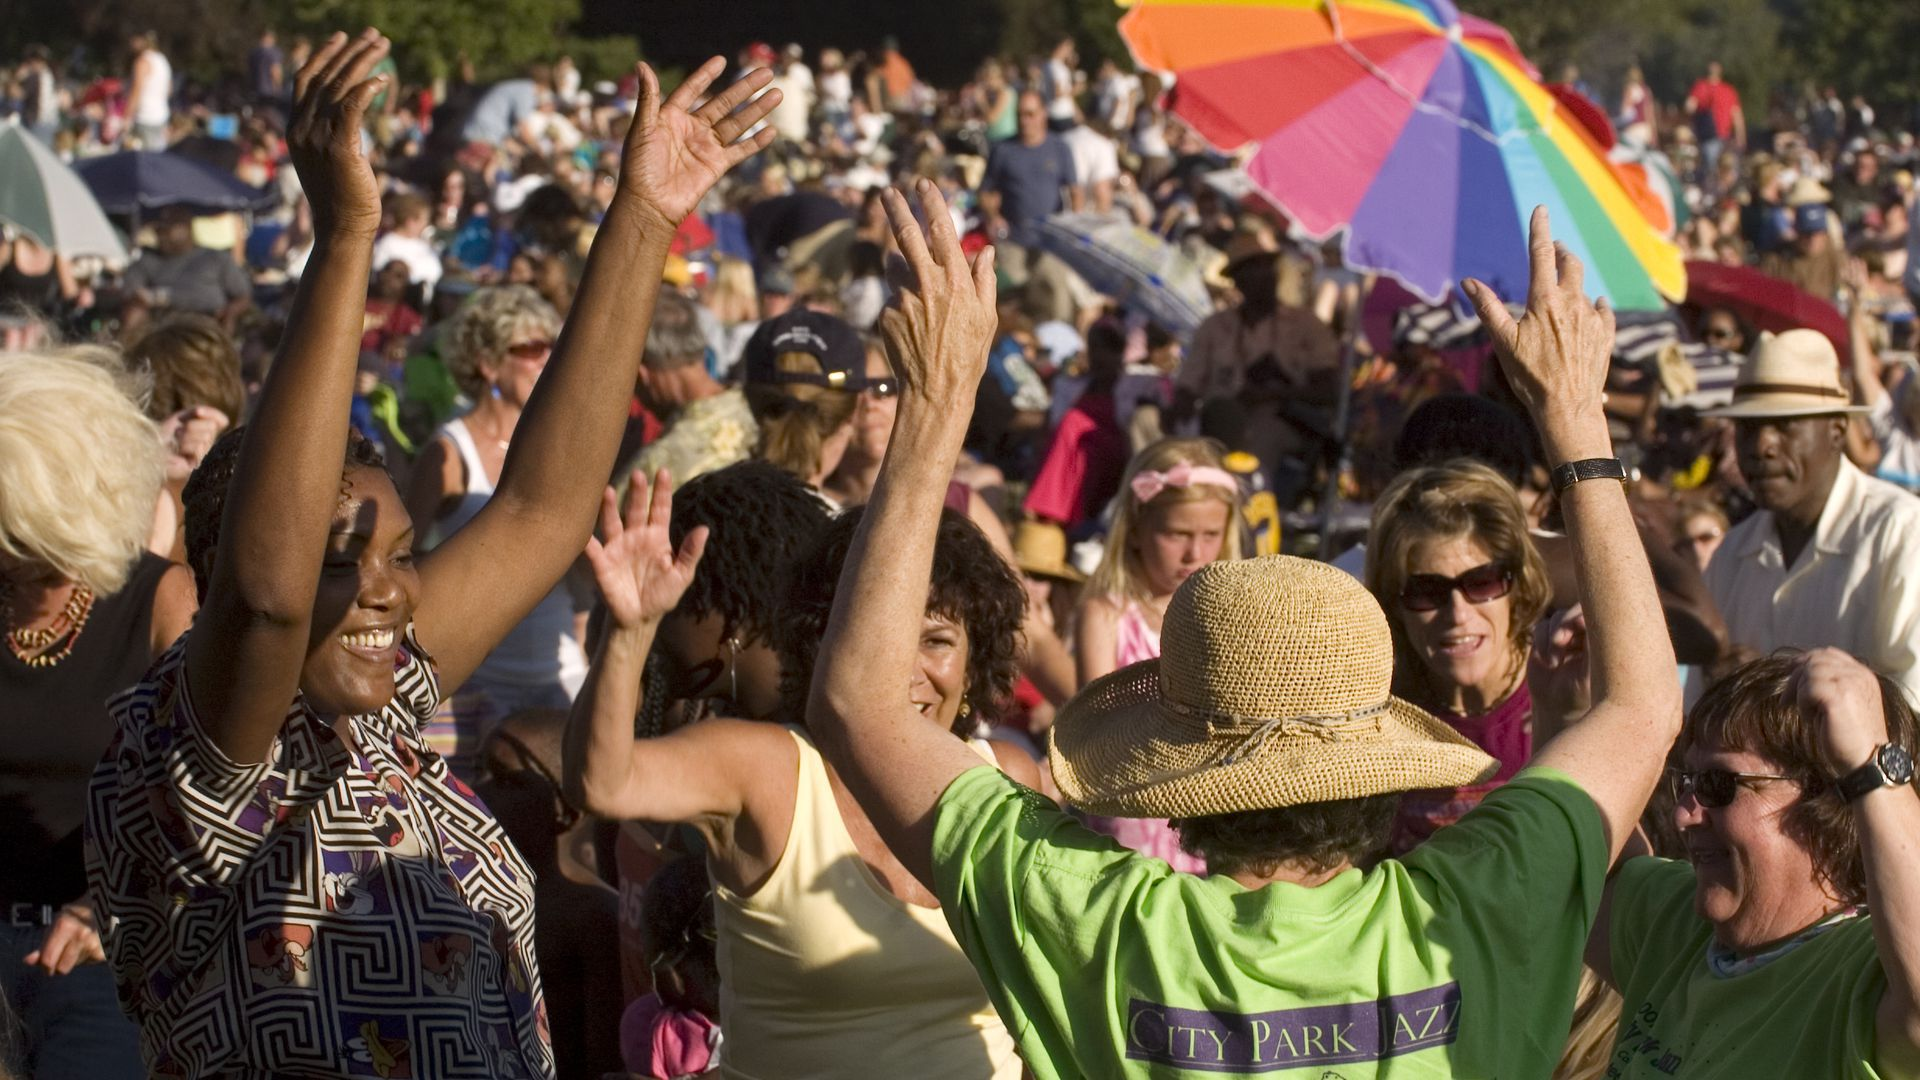 A crowd of people throw their hands in the air at a park